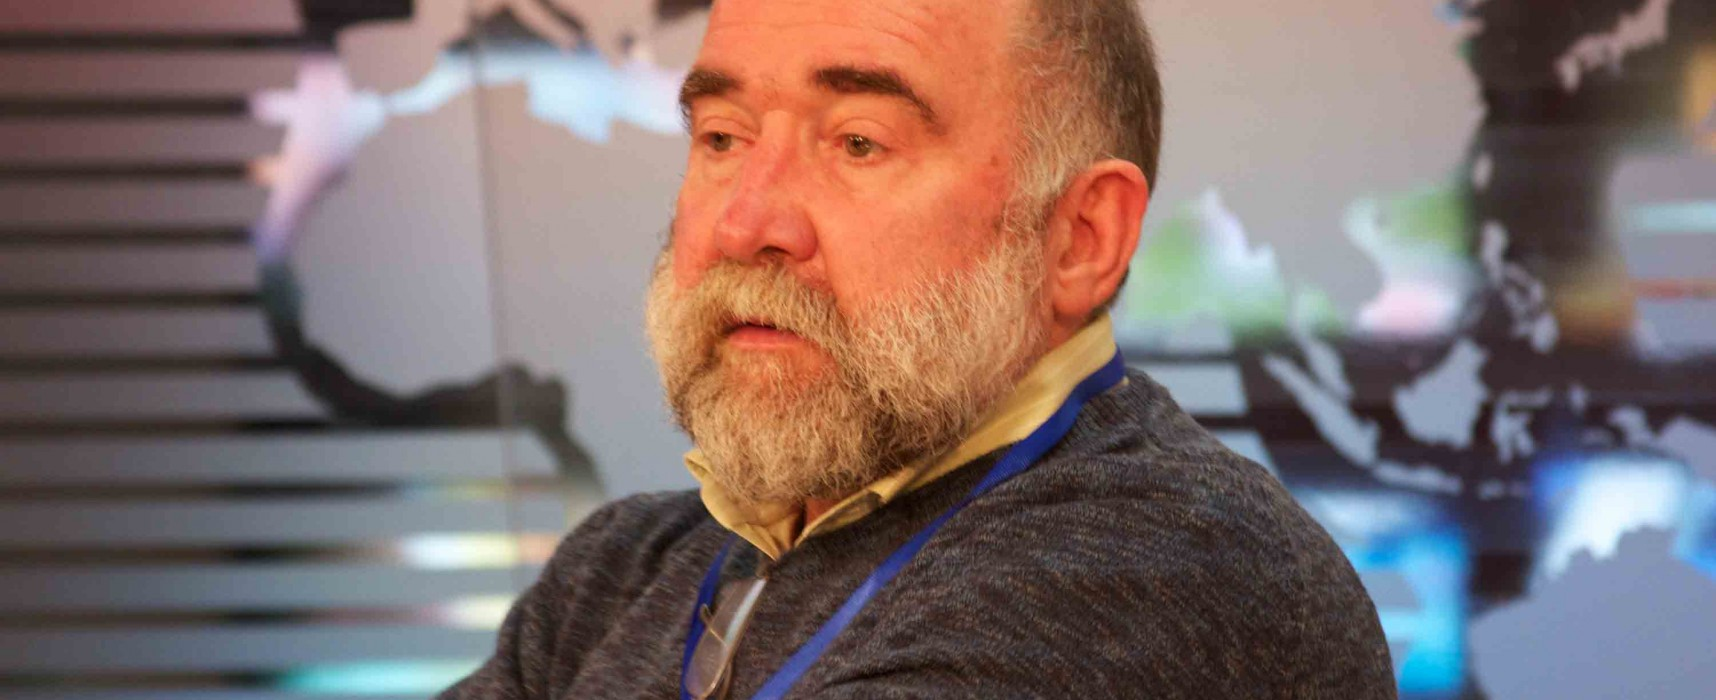 If Moscow TV Said Putin was a Criminal, Russians Would Soon Agree, Panfilov Says